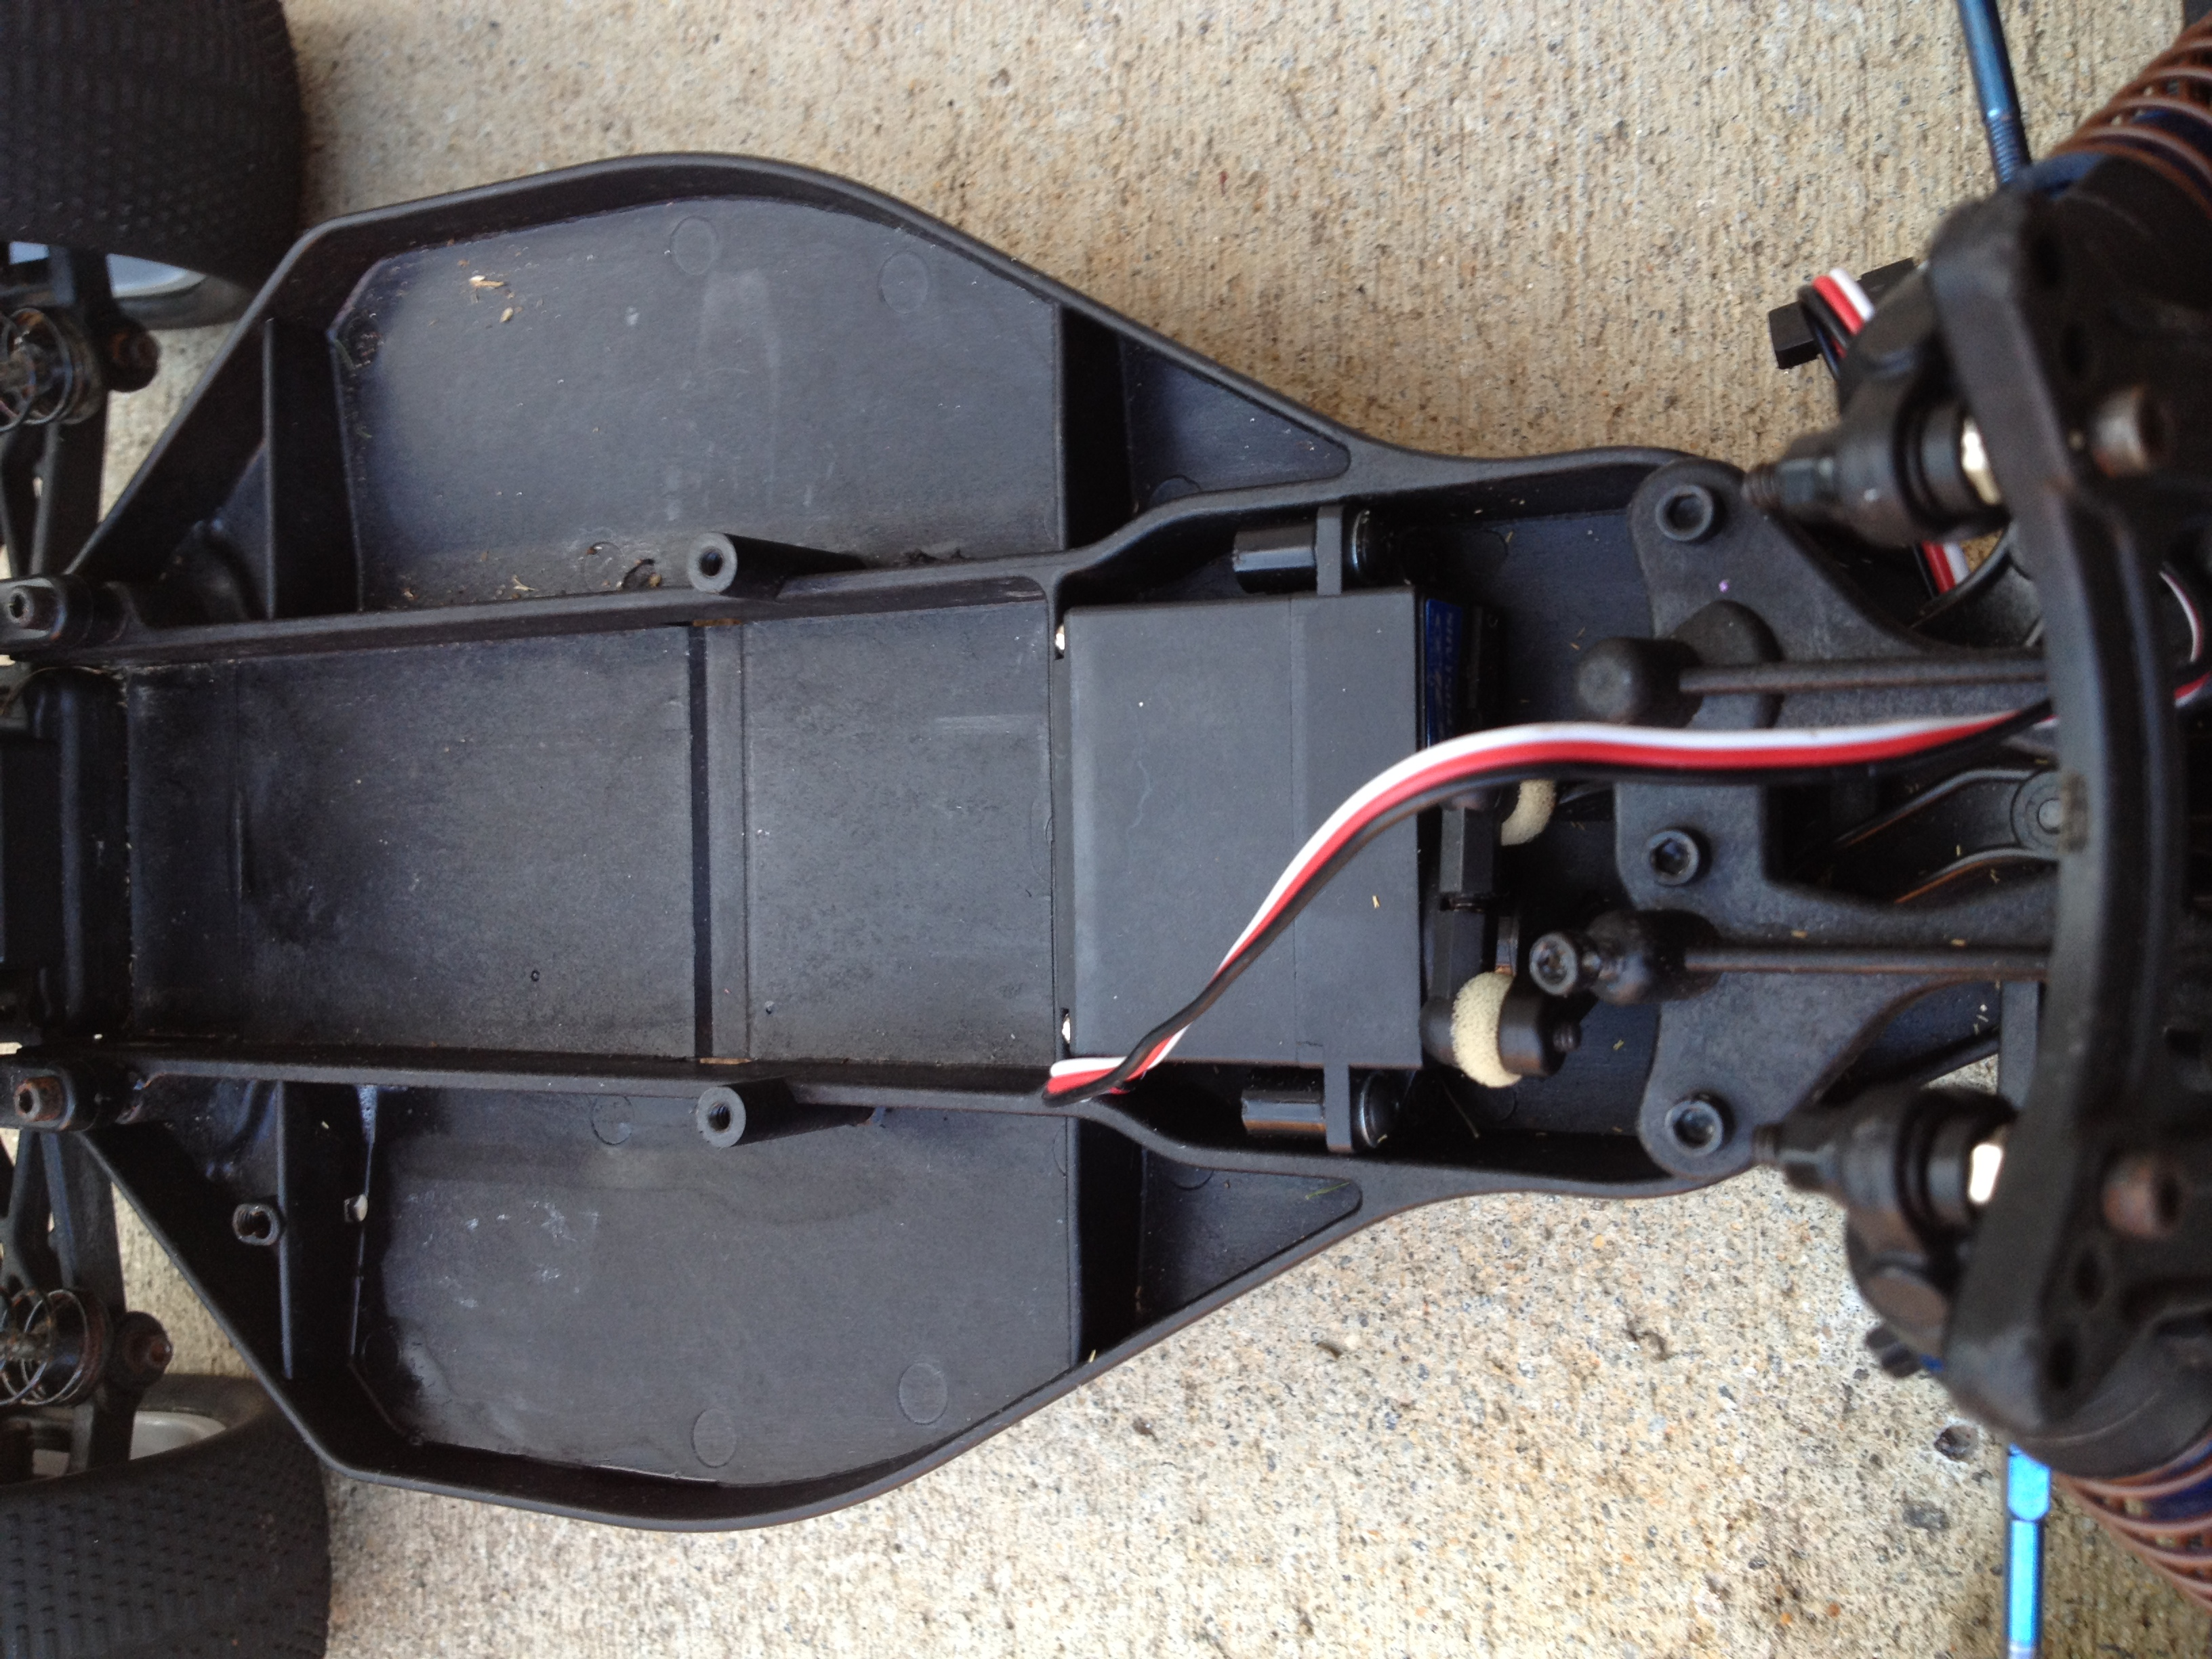 How to install electronics in a offroad RC car